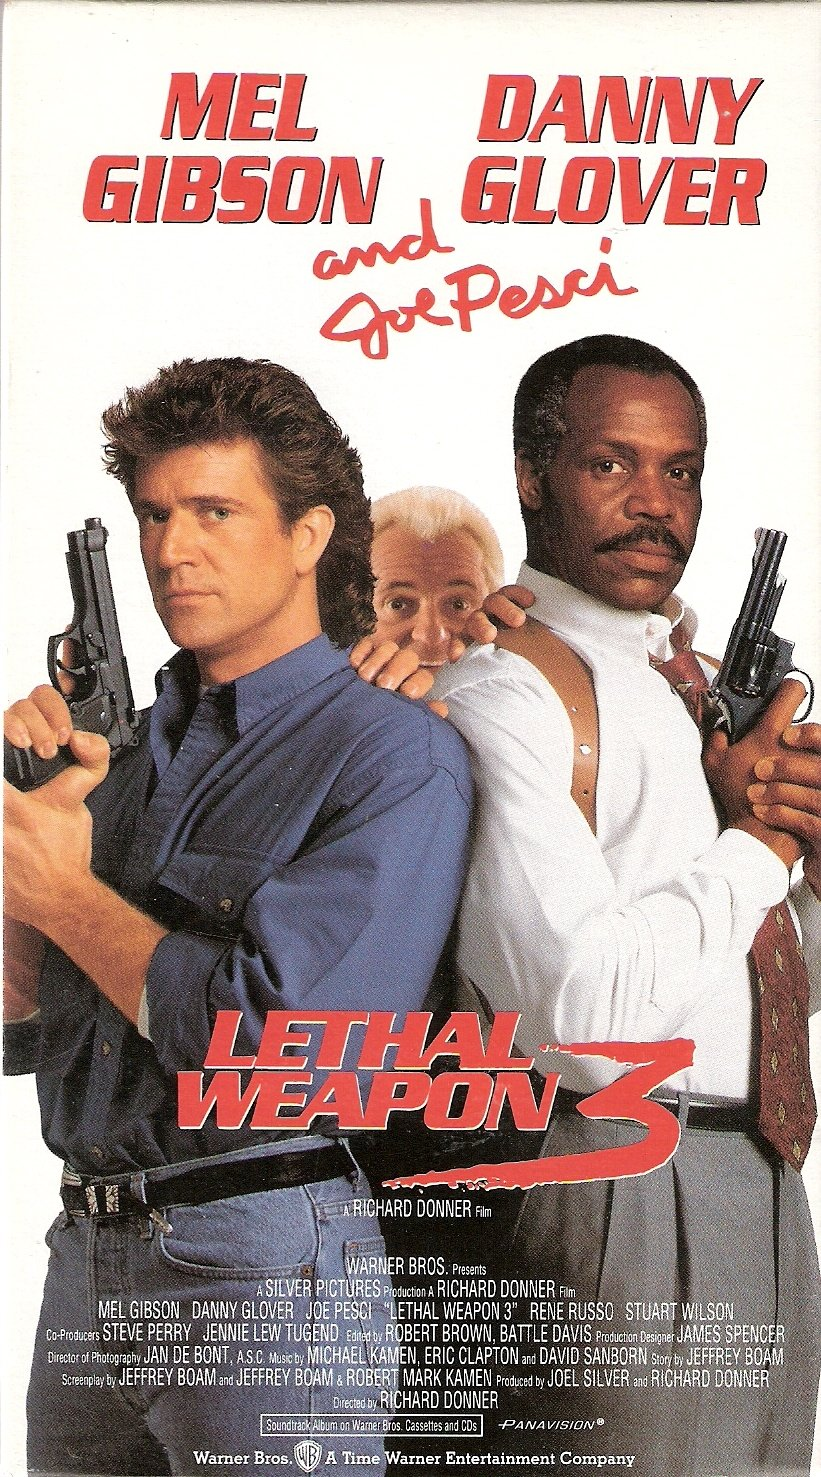 Lethal Weapon 3 Starring Mel Gibson Danny Glover